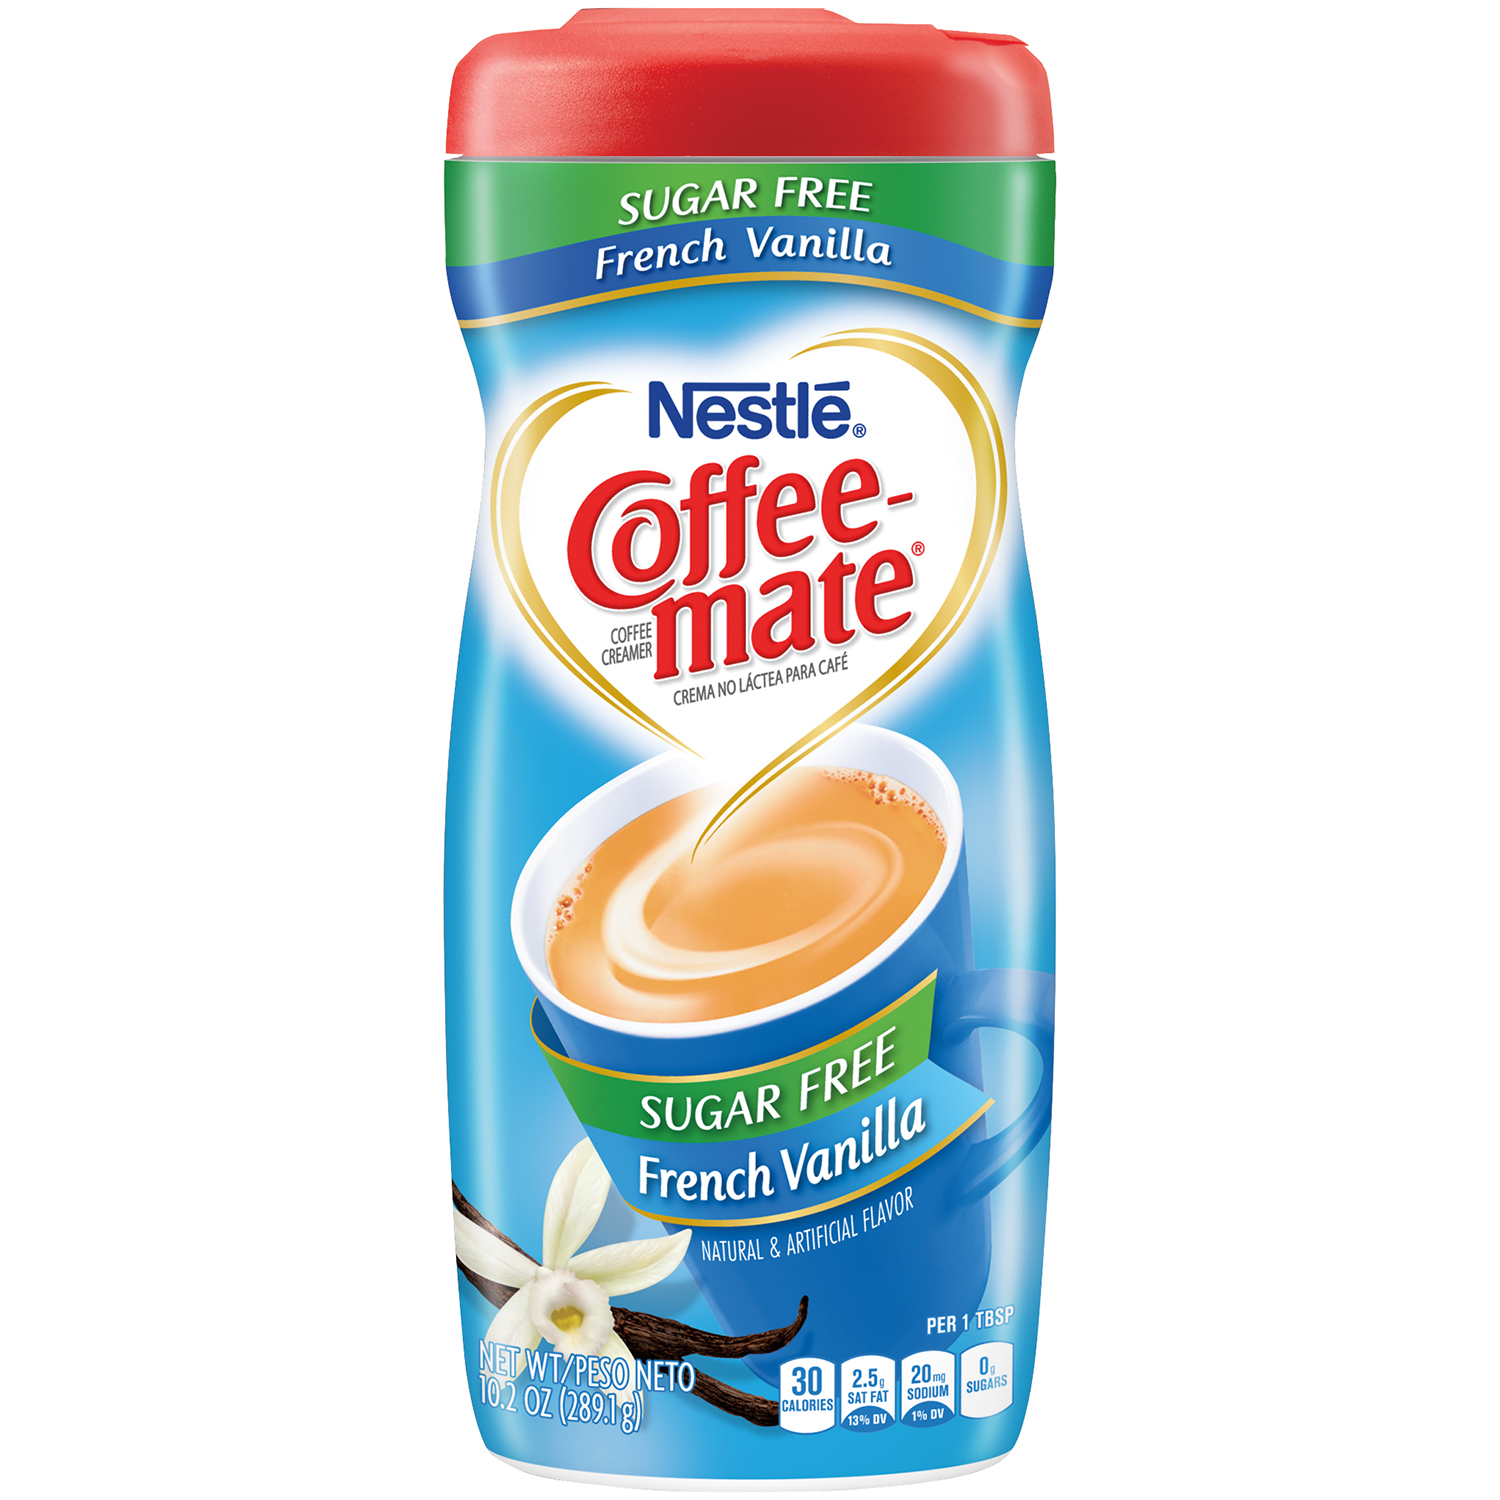 Nestle Coffeemate Sugar Free French Vanilla Powder Coffee Creamer 10.2 oz. Canister